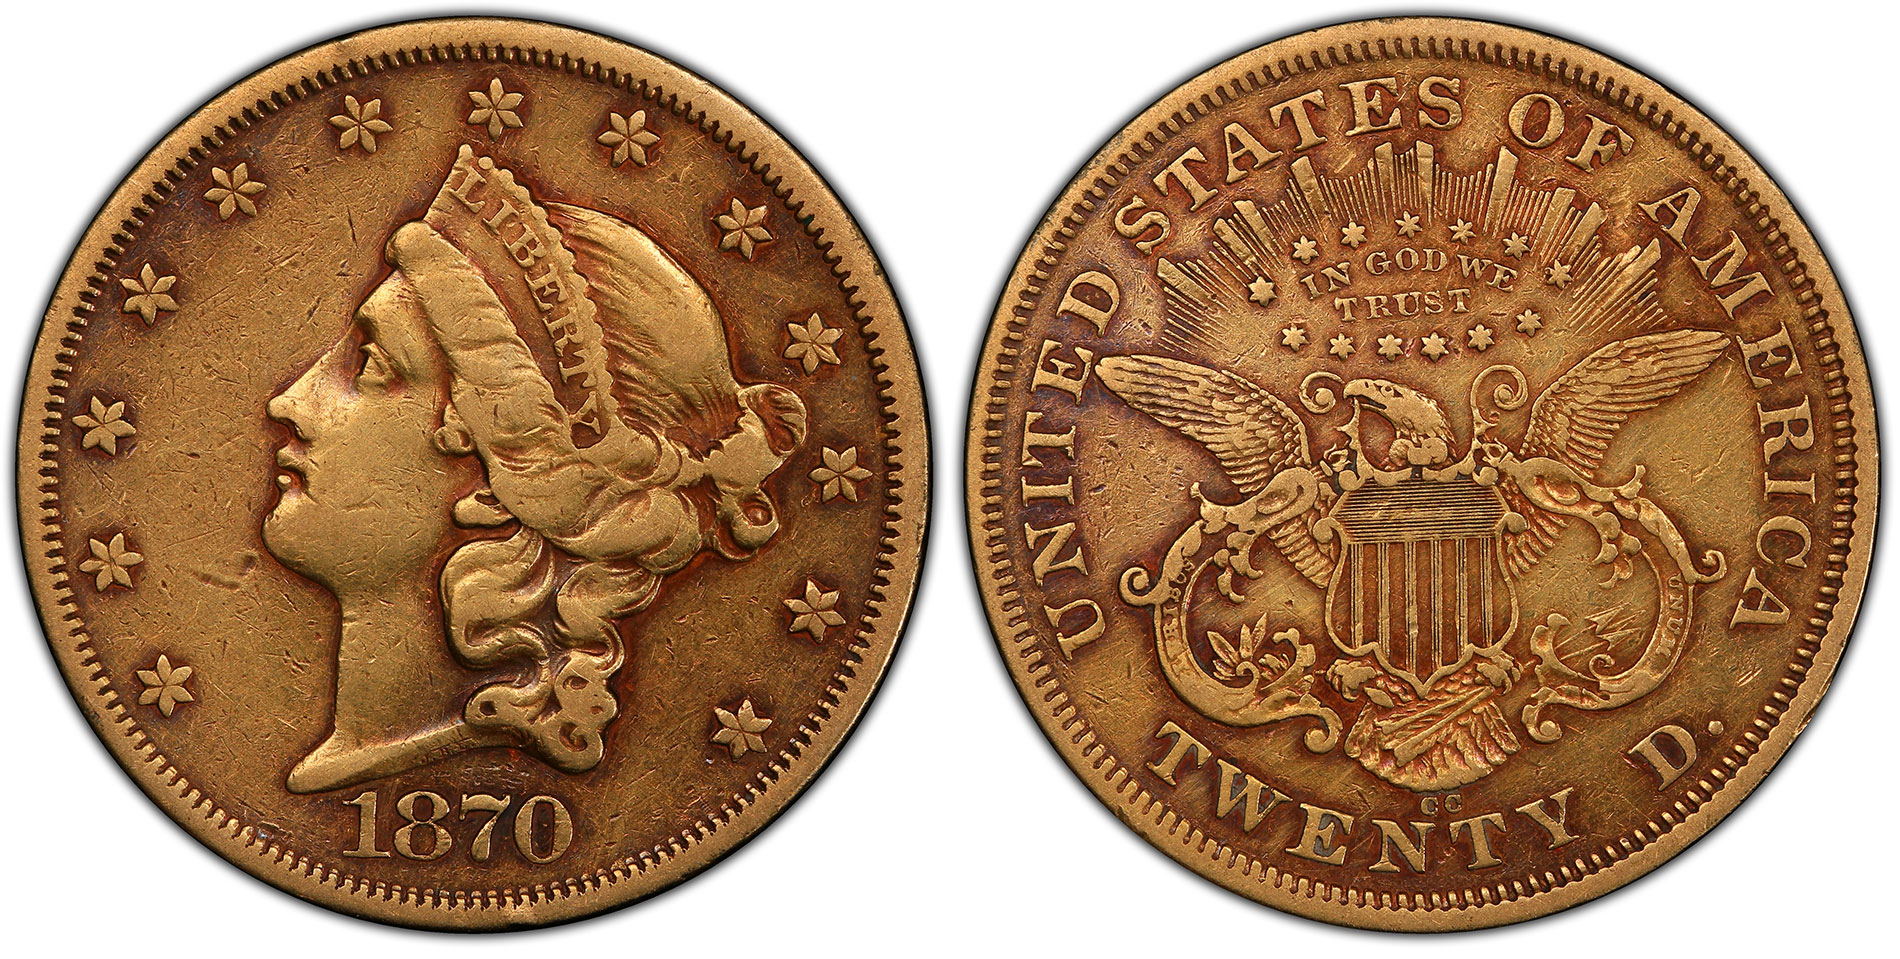 The recently found 1870-CC Liberty Head Double Eagle now graded PCGS VF30. Images courtesy PCGS.